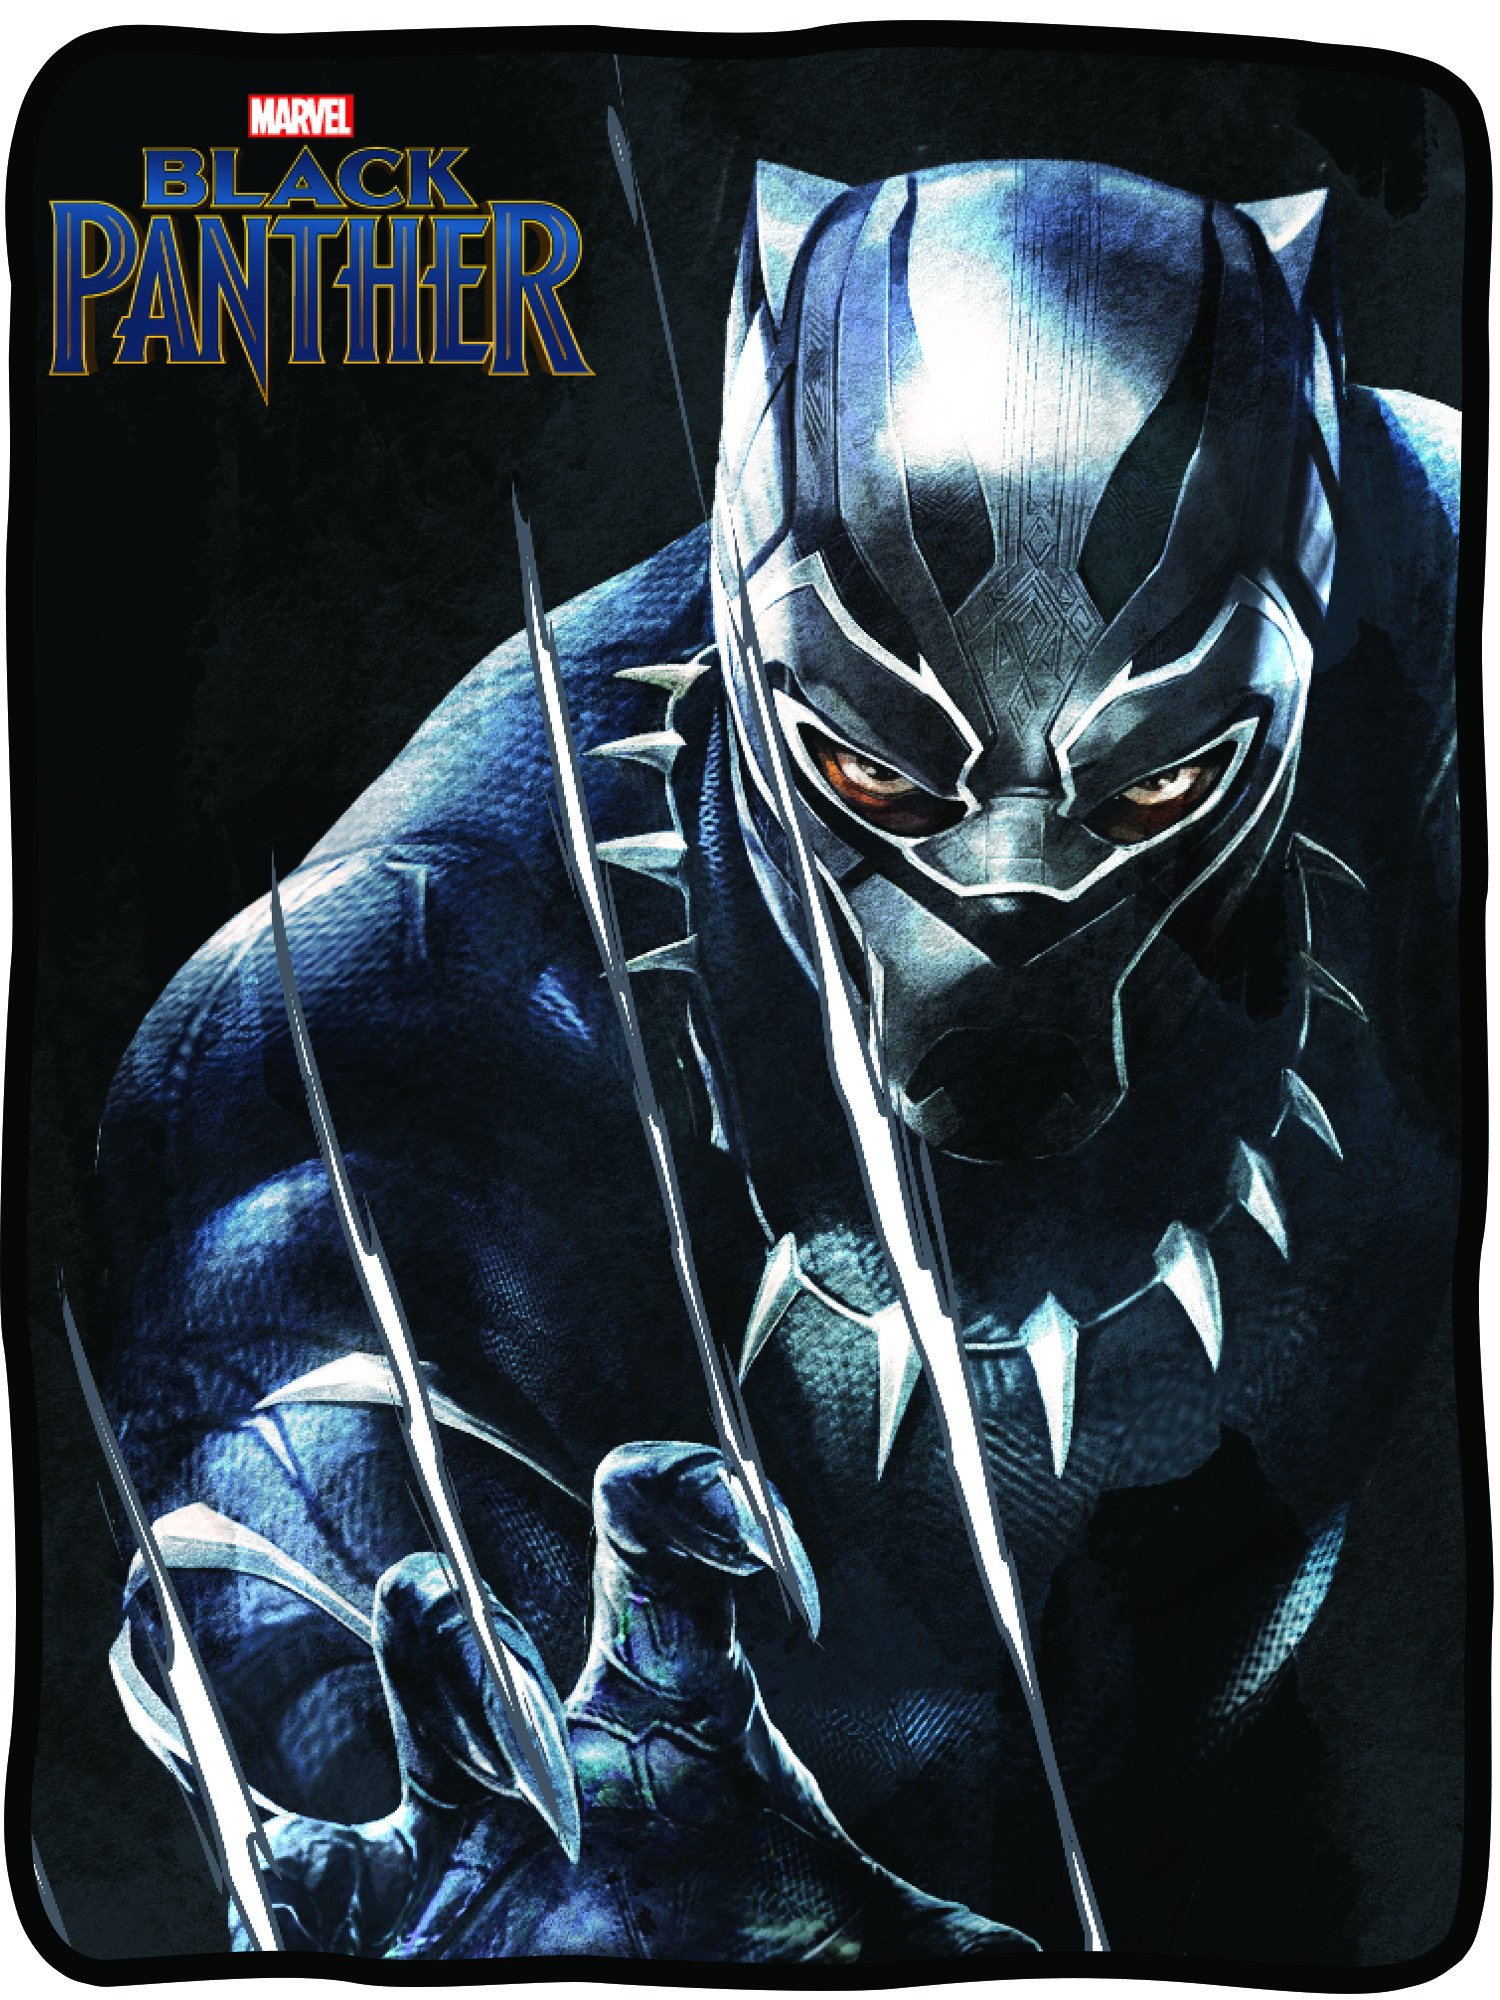 Marvel Black Panther Fleece Blanket - Officially Licensed Marvel Black Panther Movie Soft Silk Throw Bed Blanket